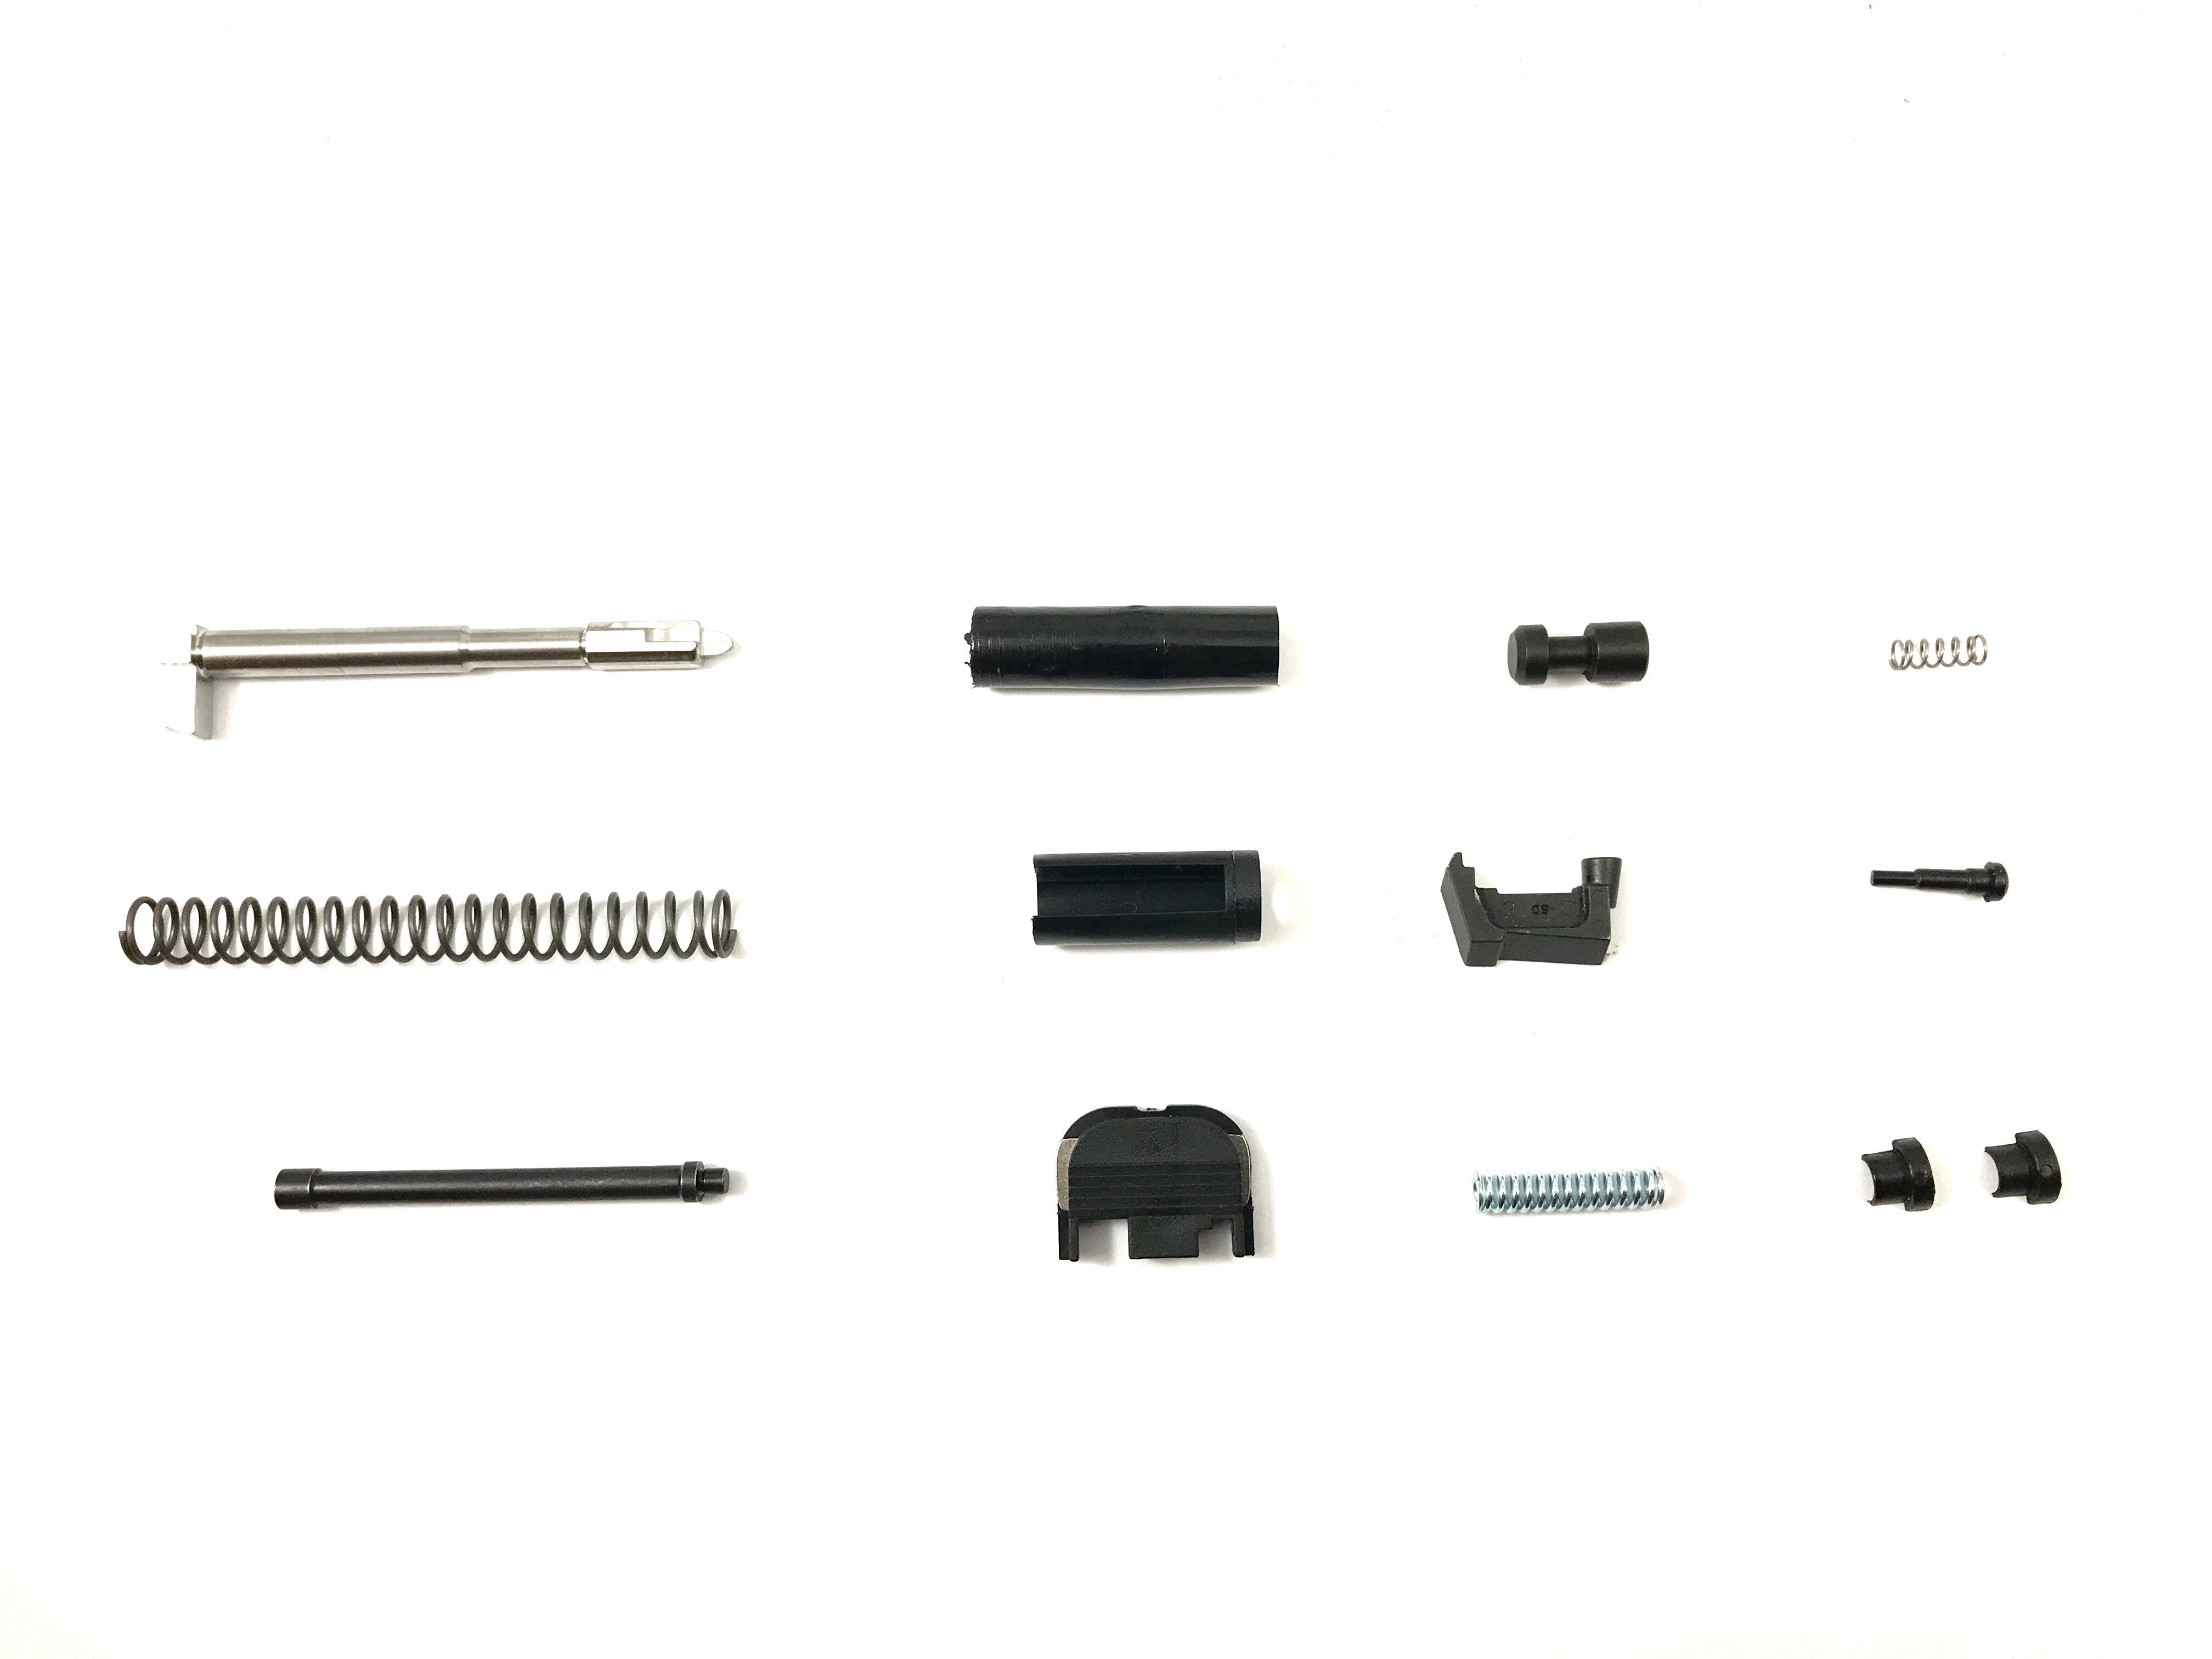 Slide Completion Kit (with standard extractor) Fits Glock Pistols, G17, G19, G26, G34. Parts for Custom Glock Upgrade or Polymer 80 Build